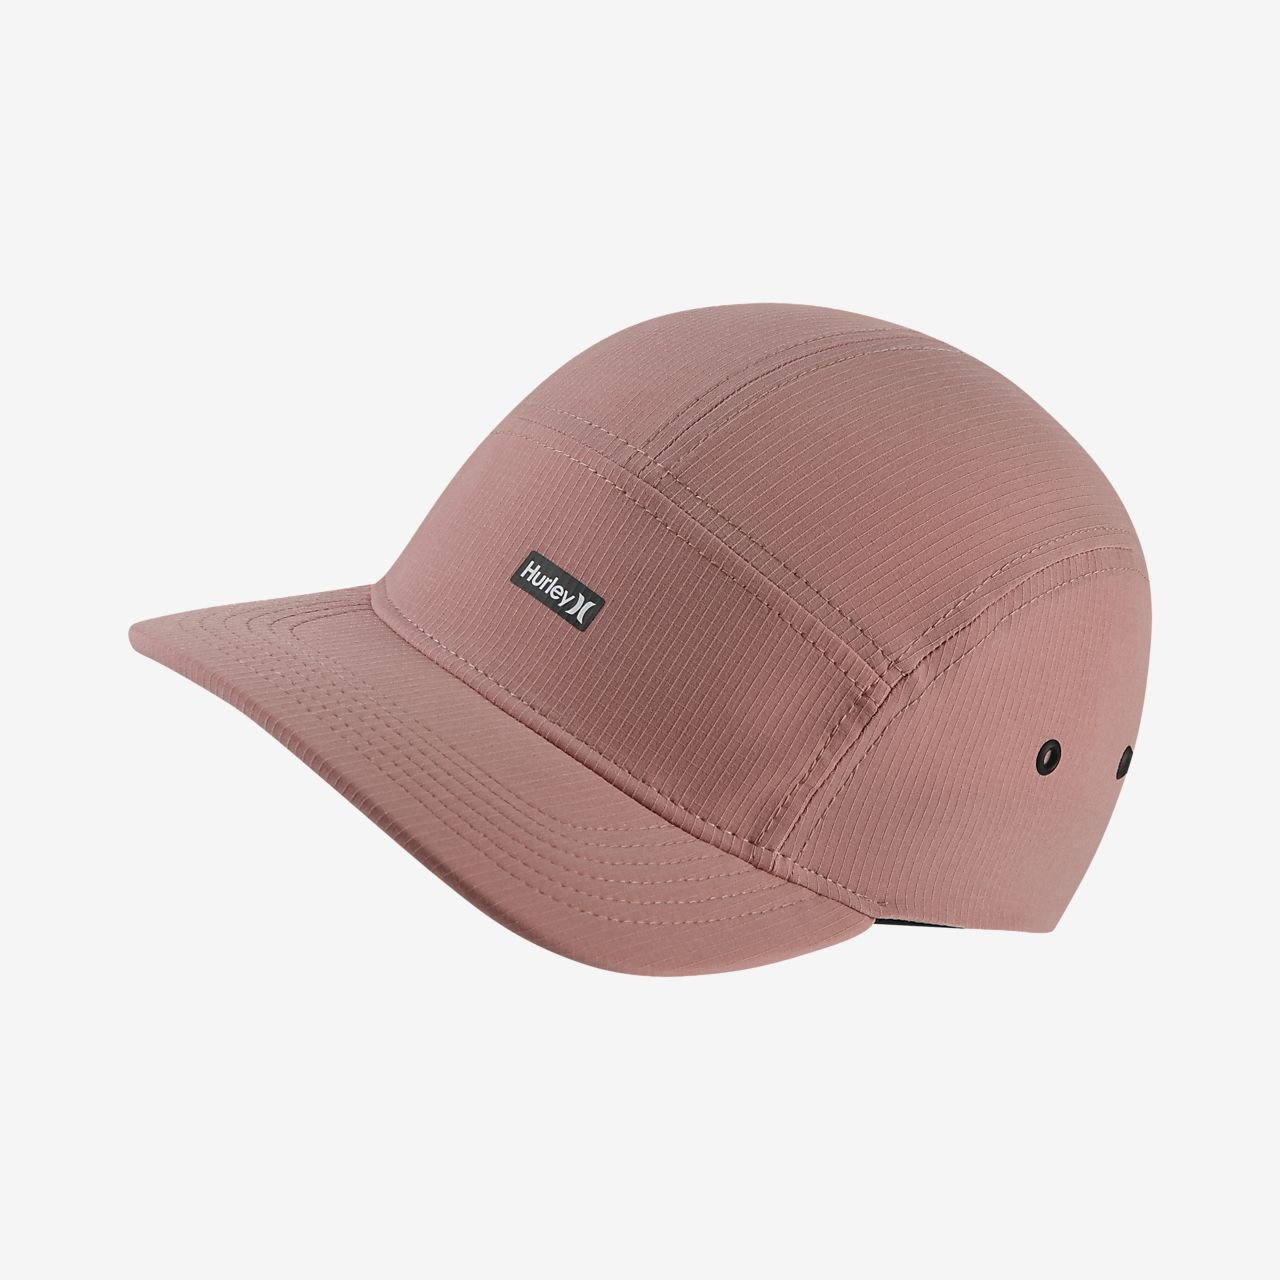 69ed379c096 Hurley One And Only Women s Adjustable Hat. Nike.com HR